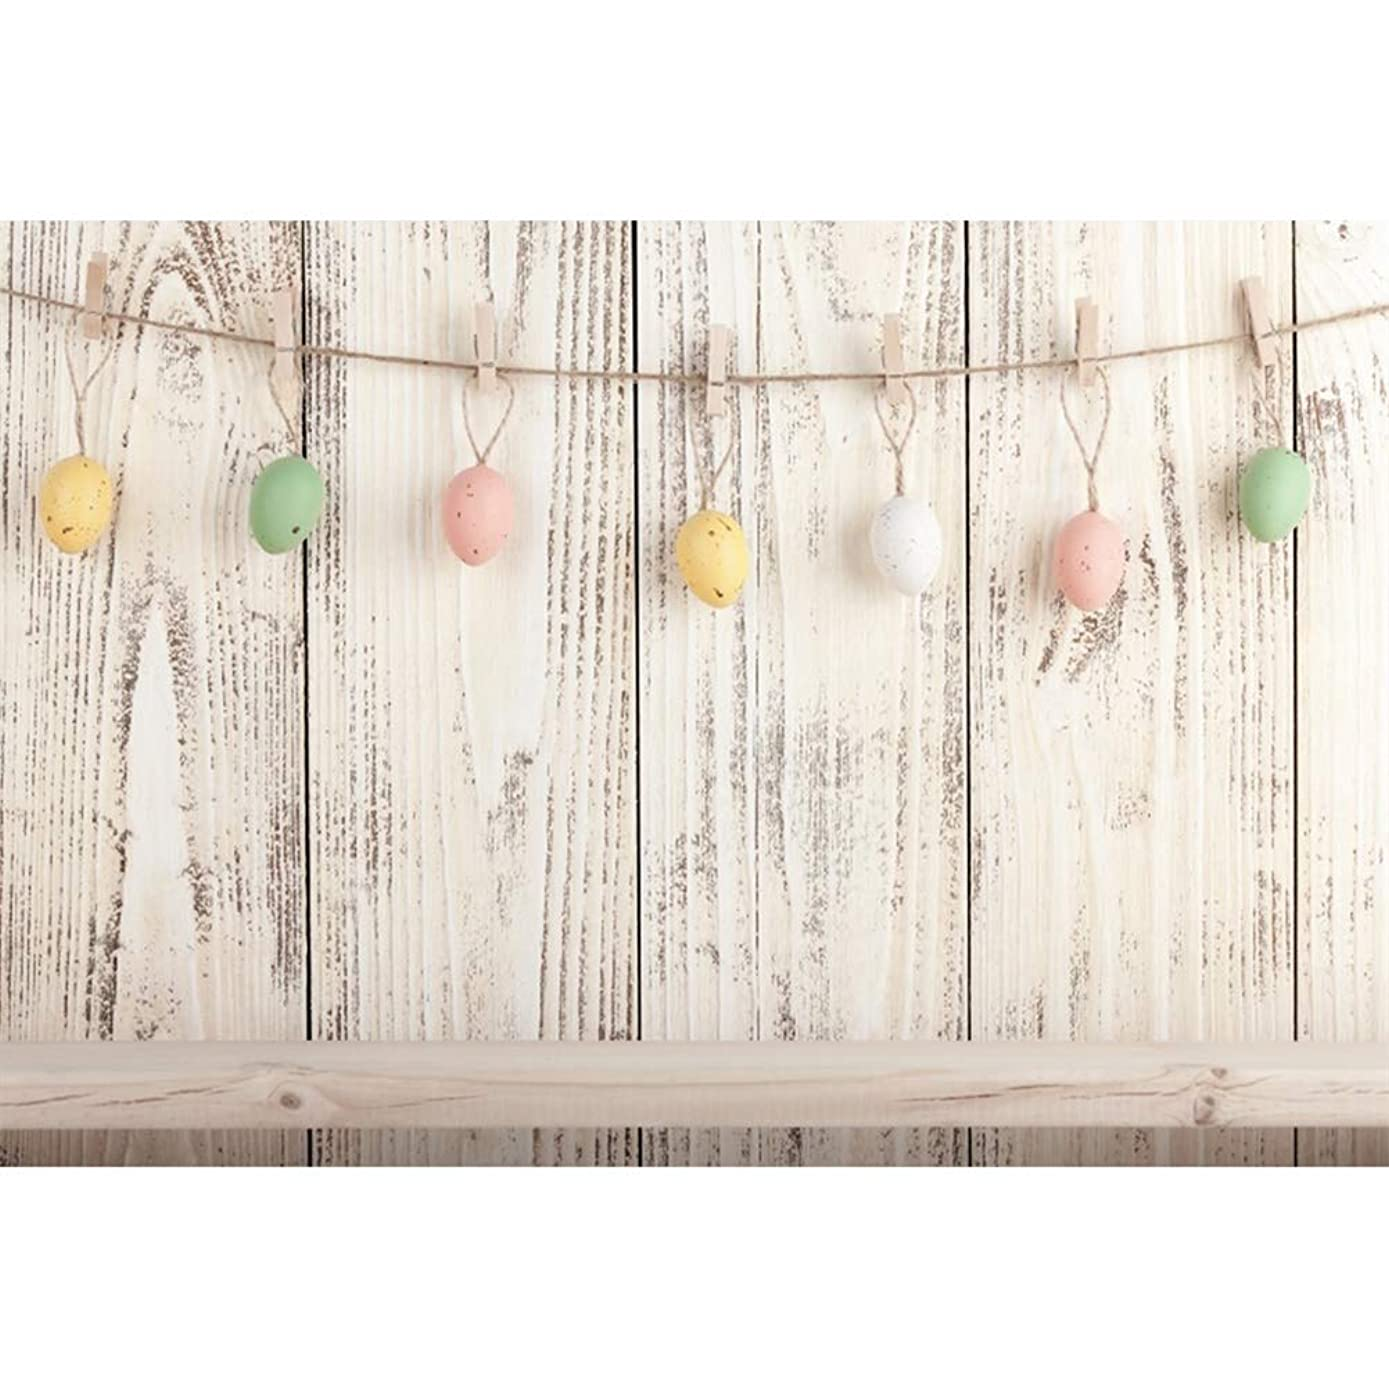 Laeacco 10x8ft Easter Theme Vinyl Photography Backdrop Hanging Easter Eggs Clothespins?Rustic Grunge Wood Plank Backdrops Wooden Wall Background Children Adults Newborn Portraits Production Photo